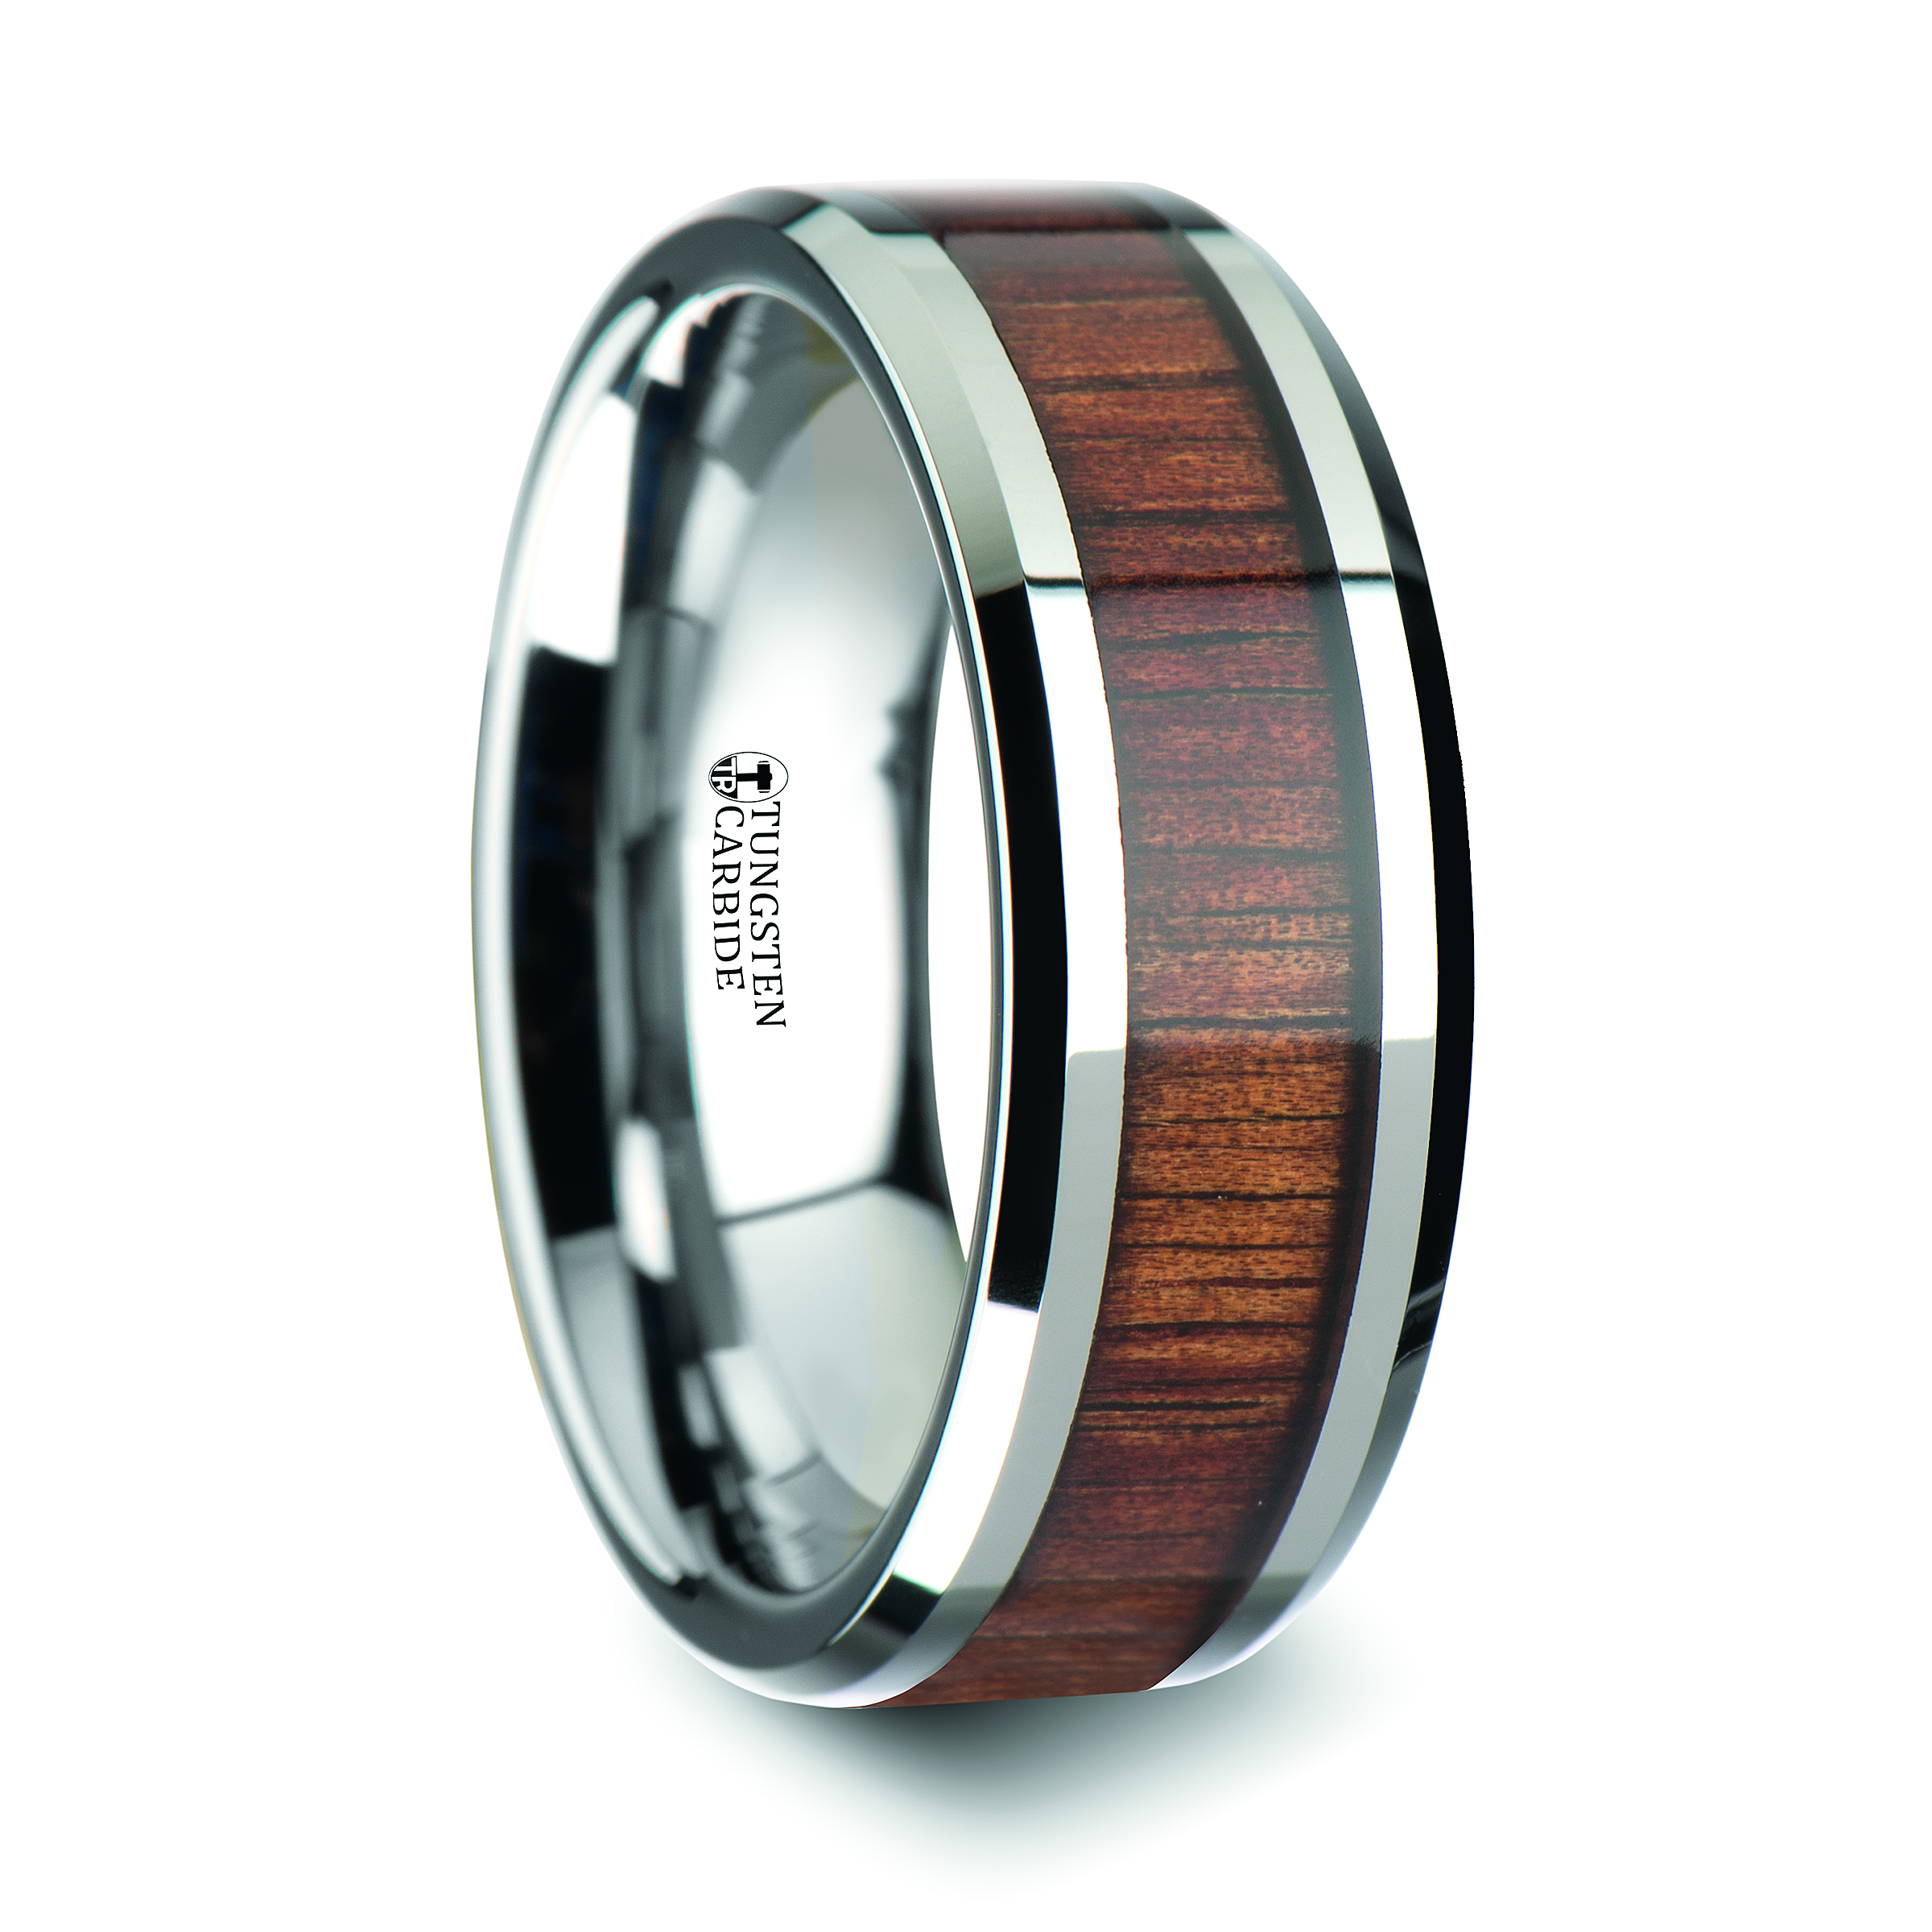 ring carbide product palmaletto hanebrink tungsten jewelers rings zbwi